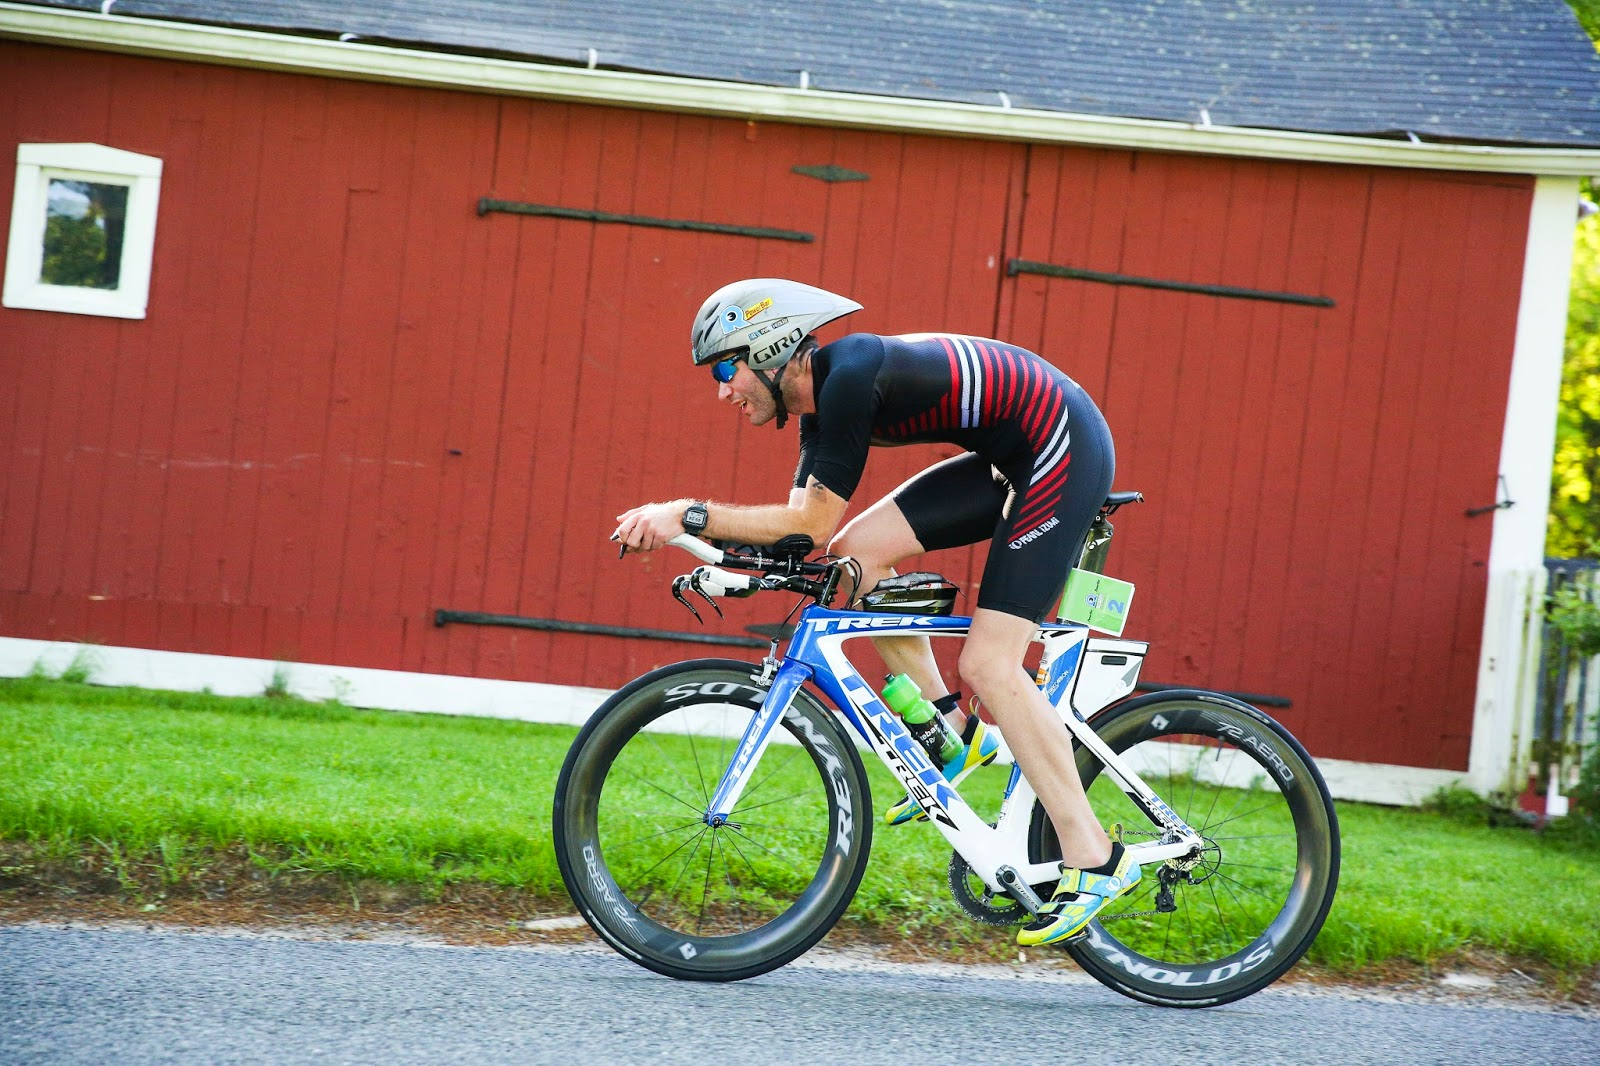 rev3tri quassyct 005348 The Hook Brings You Back: 171 Miles of Racing in 8 Days Report